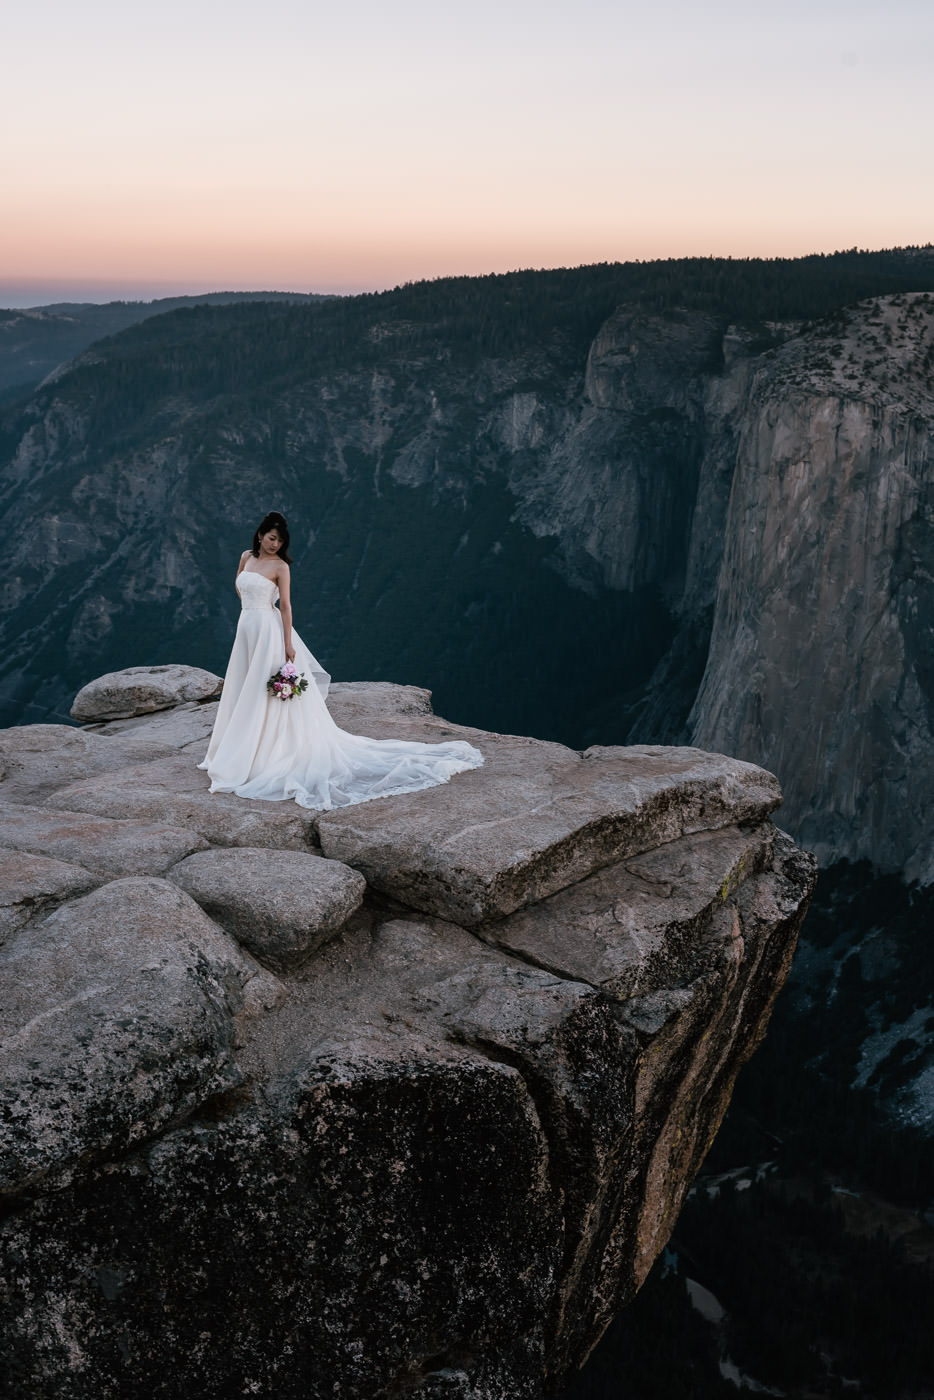 Beautiful bride poses in her white wedding dress on the grey granite cliffs of Yosemite's southern rim.